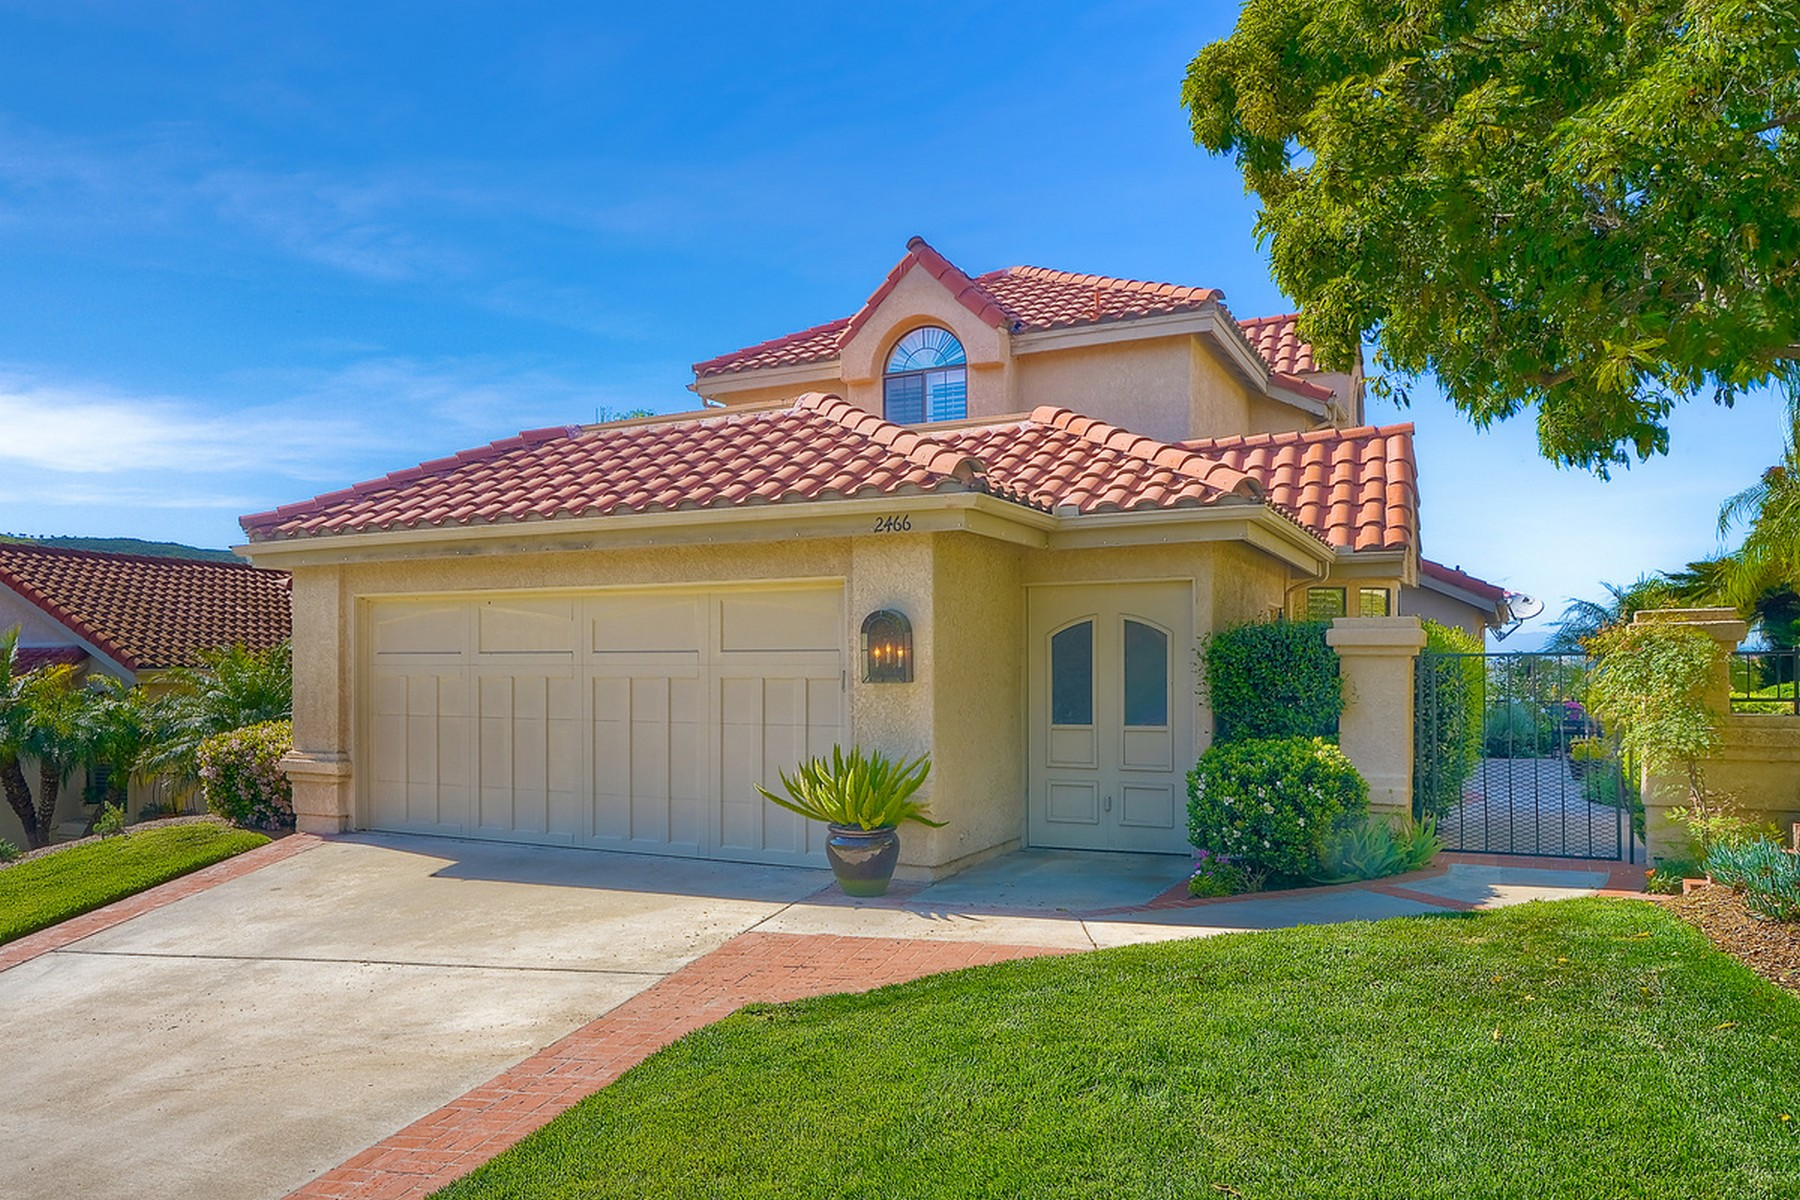 Single Family Home for Sale at 2644 Vista Valley Lane 2466 Vista Valley Lane Vista, California, 92084 United States